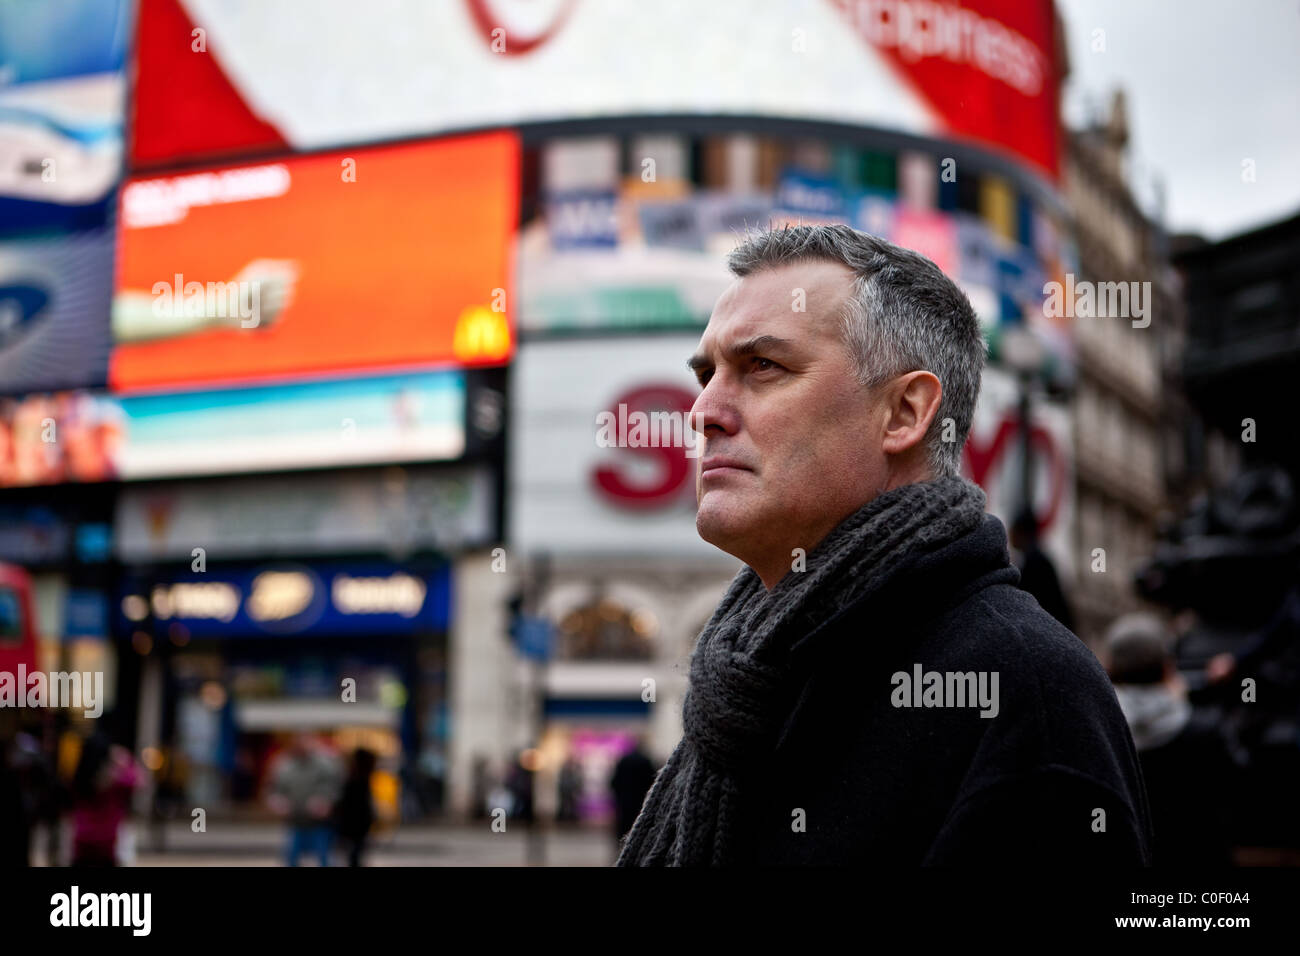 Stern Male in London's Picadilly Circus - Stock Image